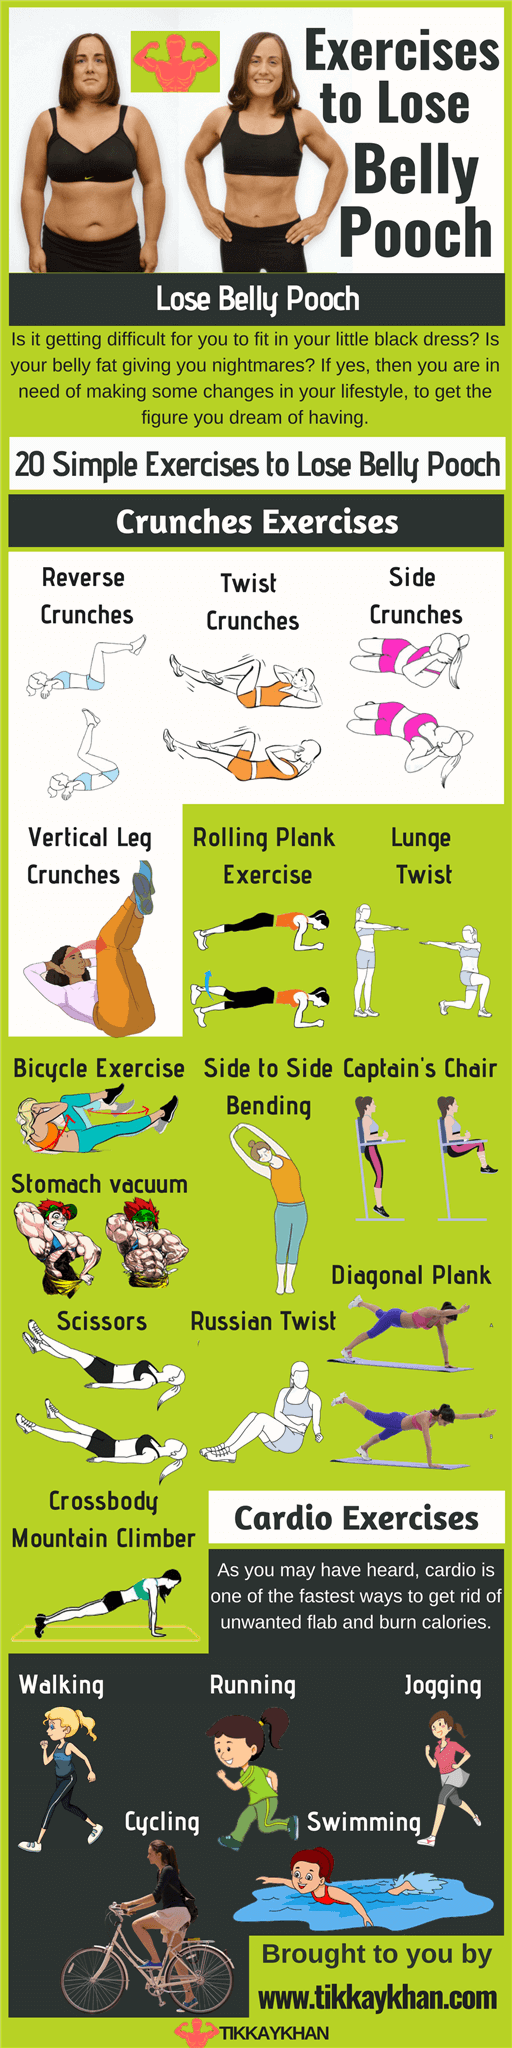 20 Simple Exercises to Lose Belly Pooch Infographic